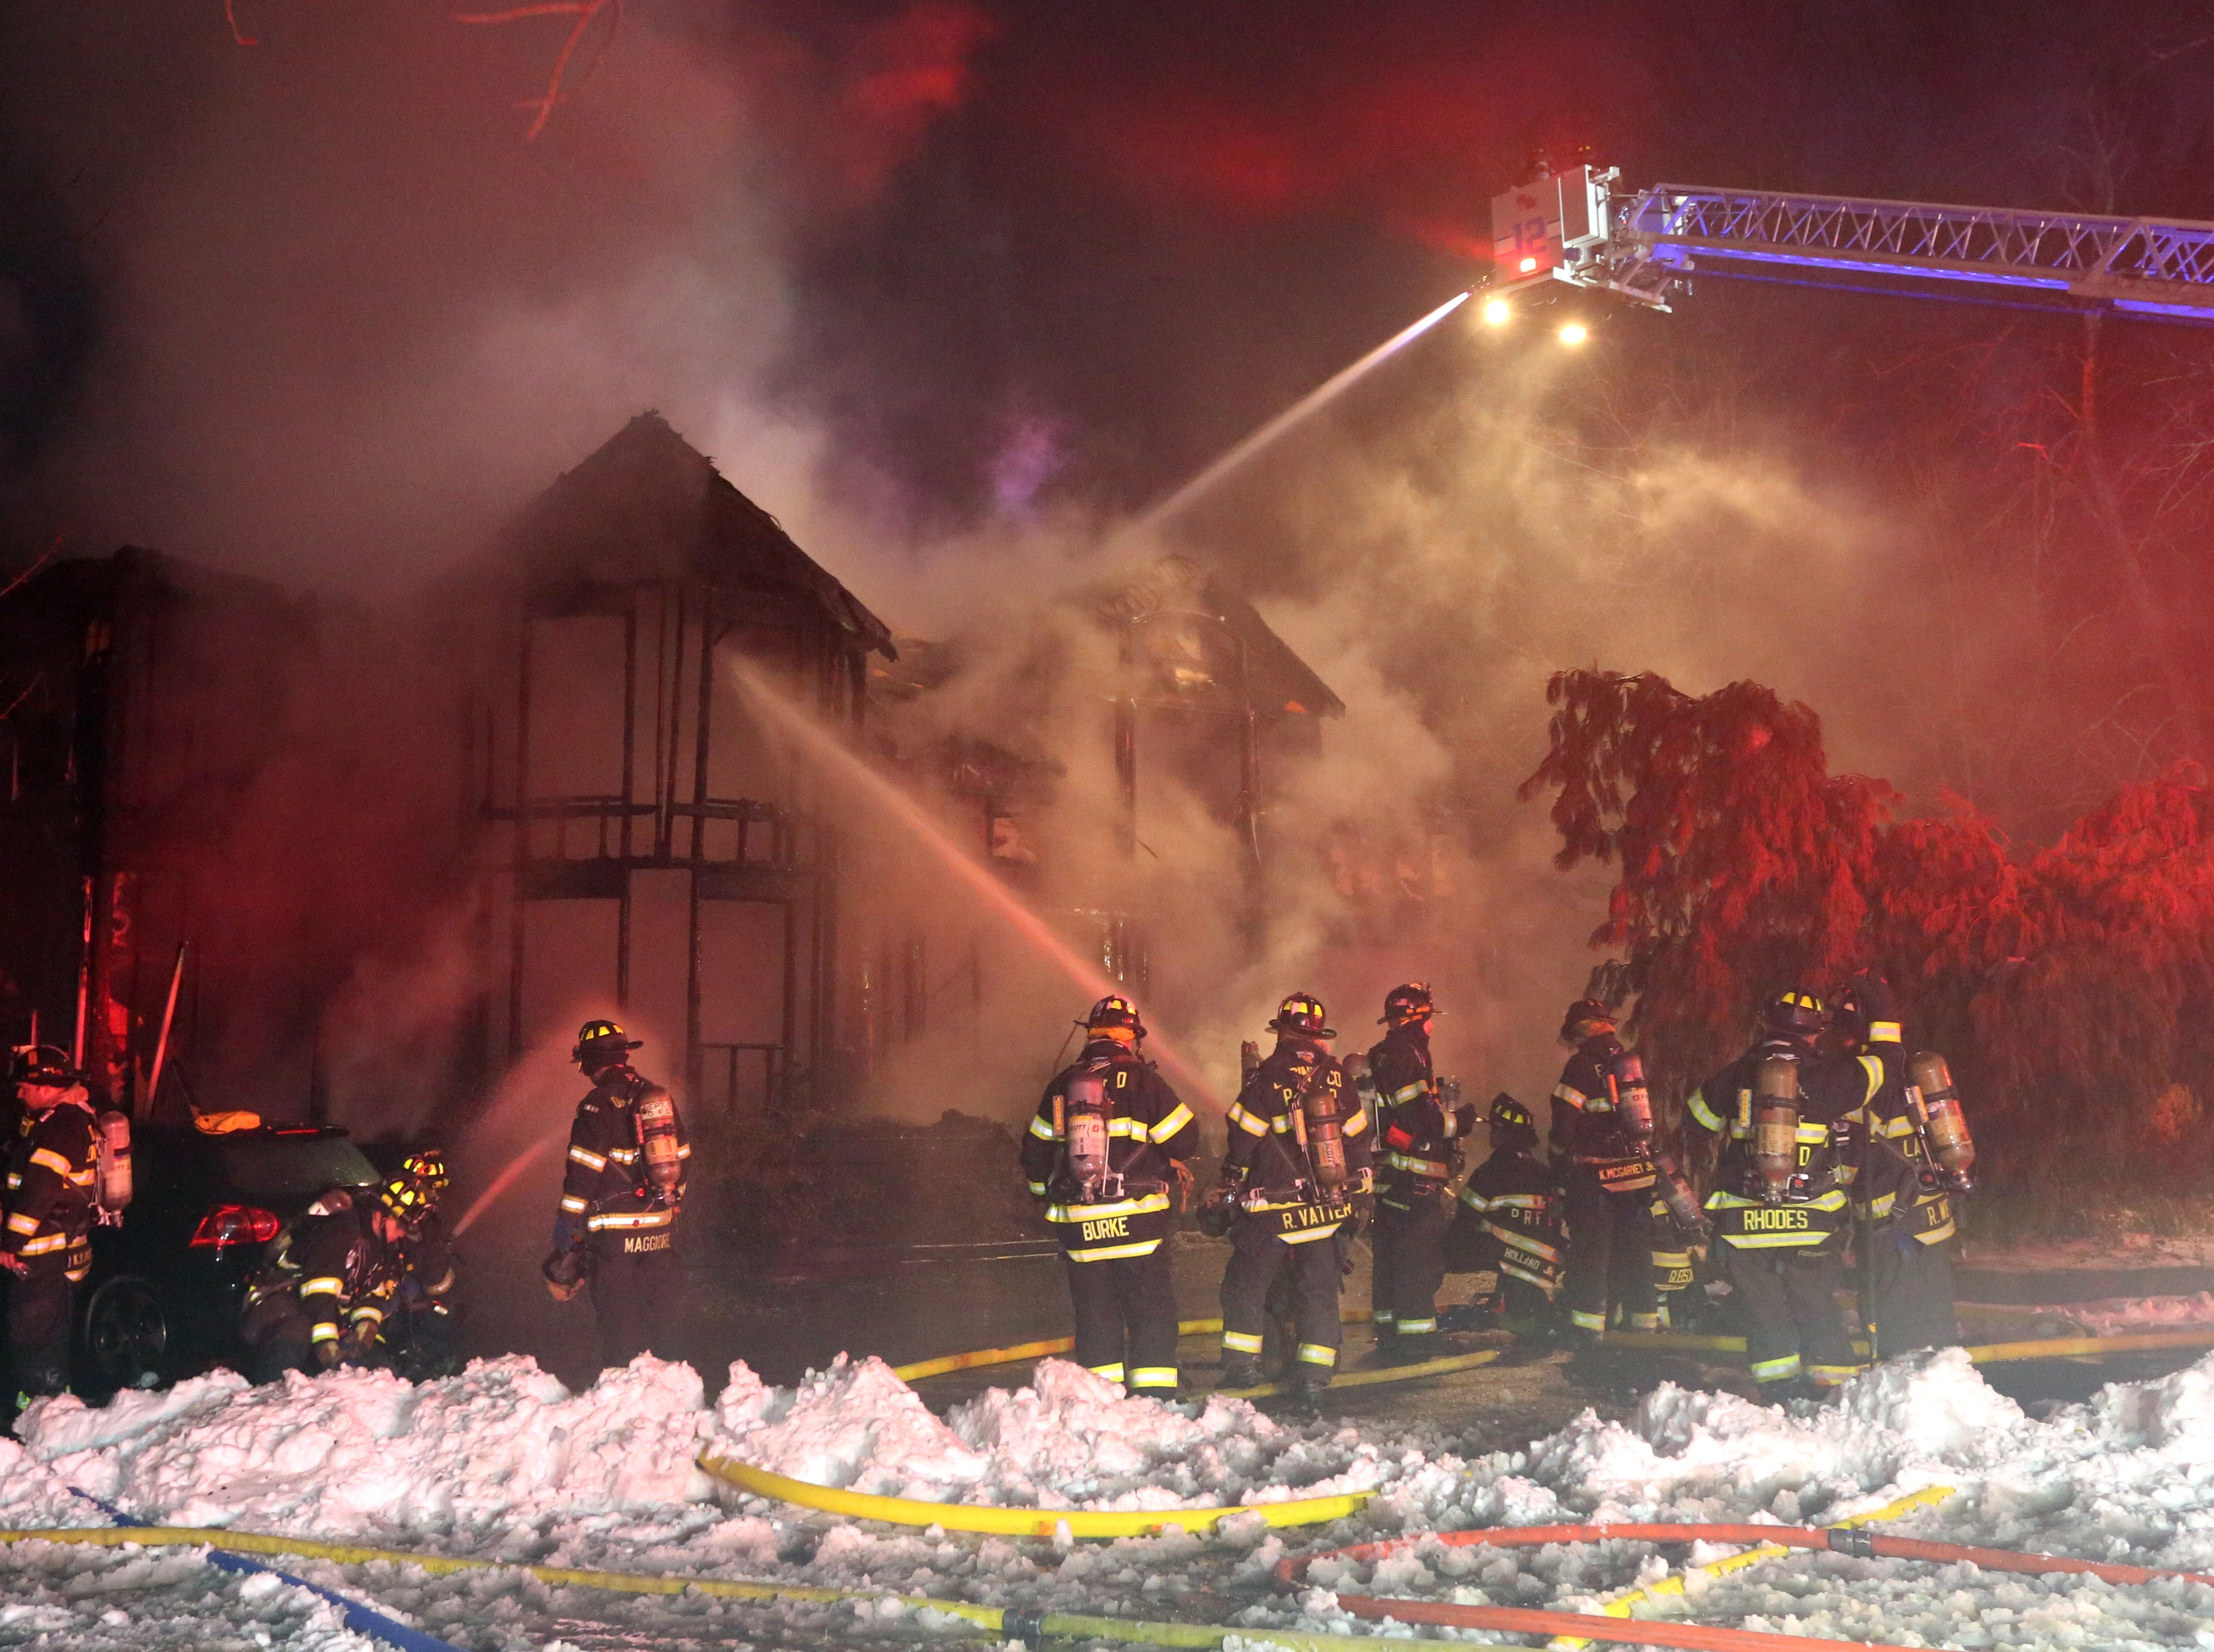 A large house was destroyed by fire on Orangeburg Rd. in Pearl River Jan. 8, 2018.